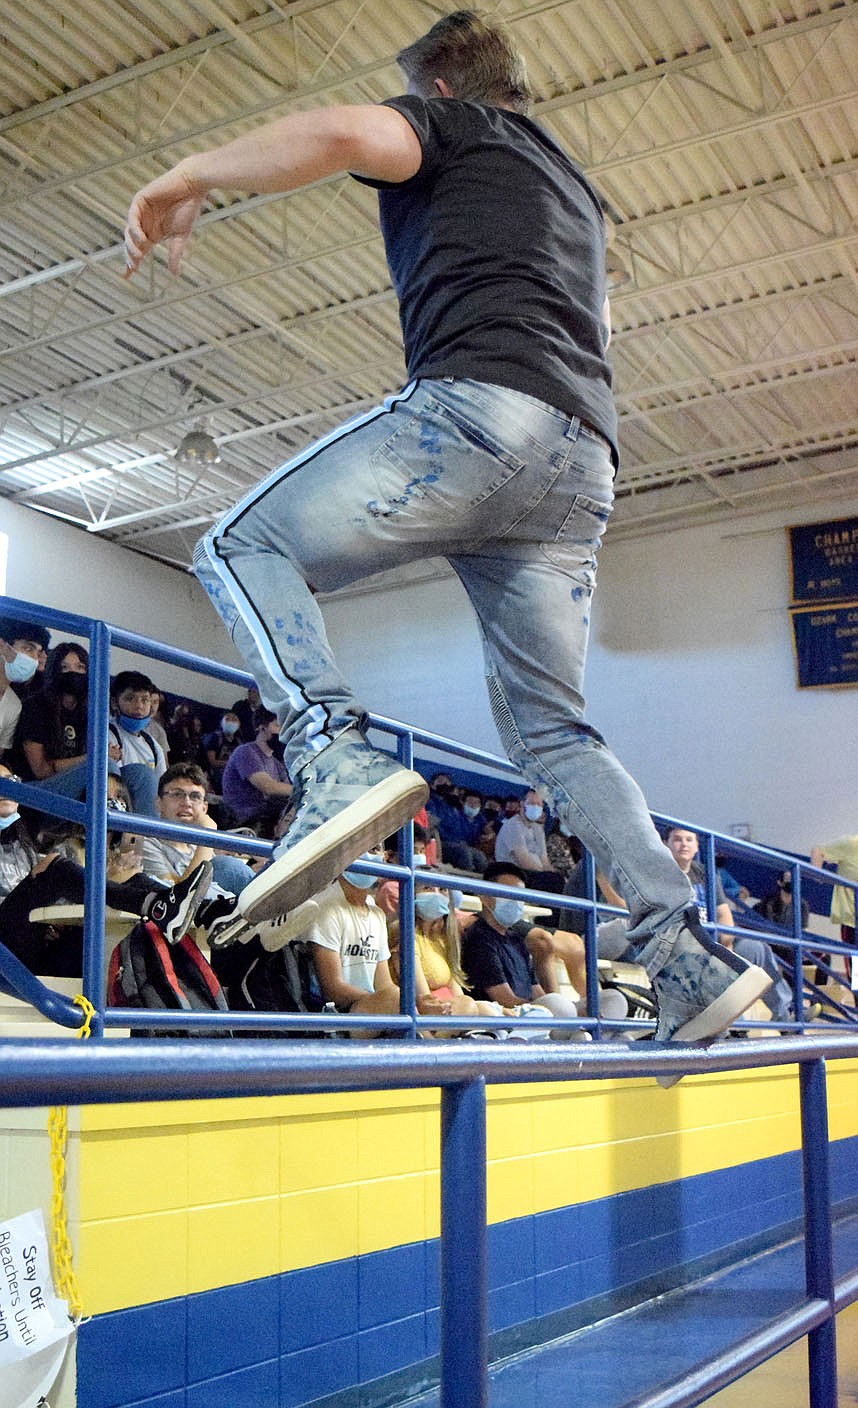 Westside Eagle Observer/MIKE ECKELS  As part of motivational dance routine, Craig Scott jumps over a rail in front of the bleachers at Peterson Gym in Decatur Sept. 8 to get the kids into the program. Scott, a surviver of the Columbine High School shooting in 1999, was in Decatur to motivate middle and high school students to be more of a positive influence on their families, friends, community and the world around them.